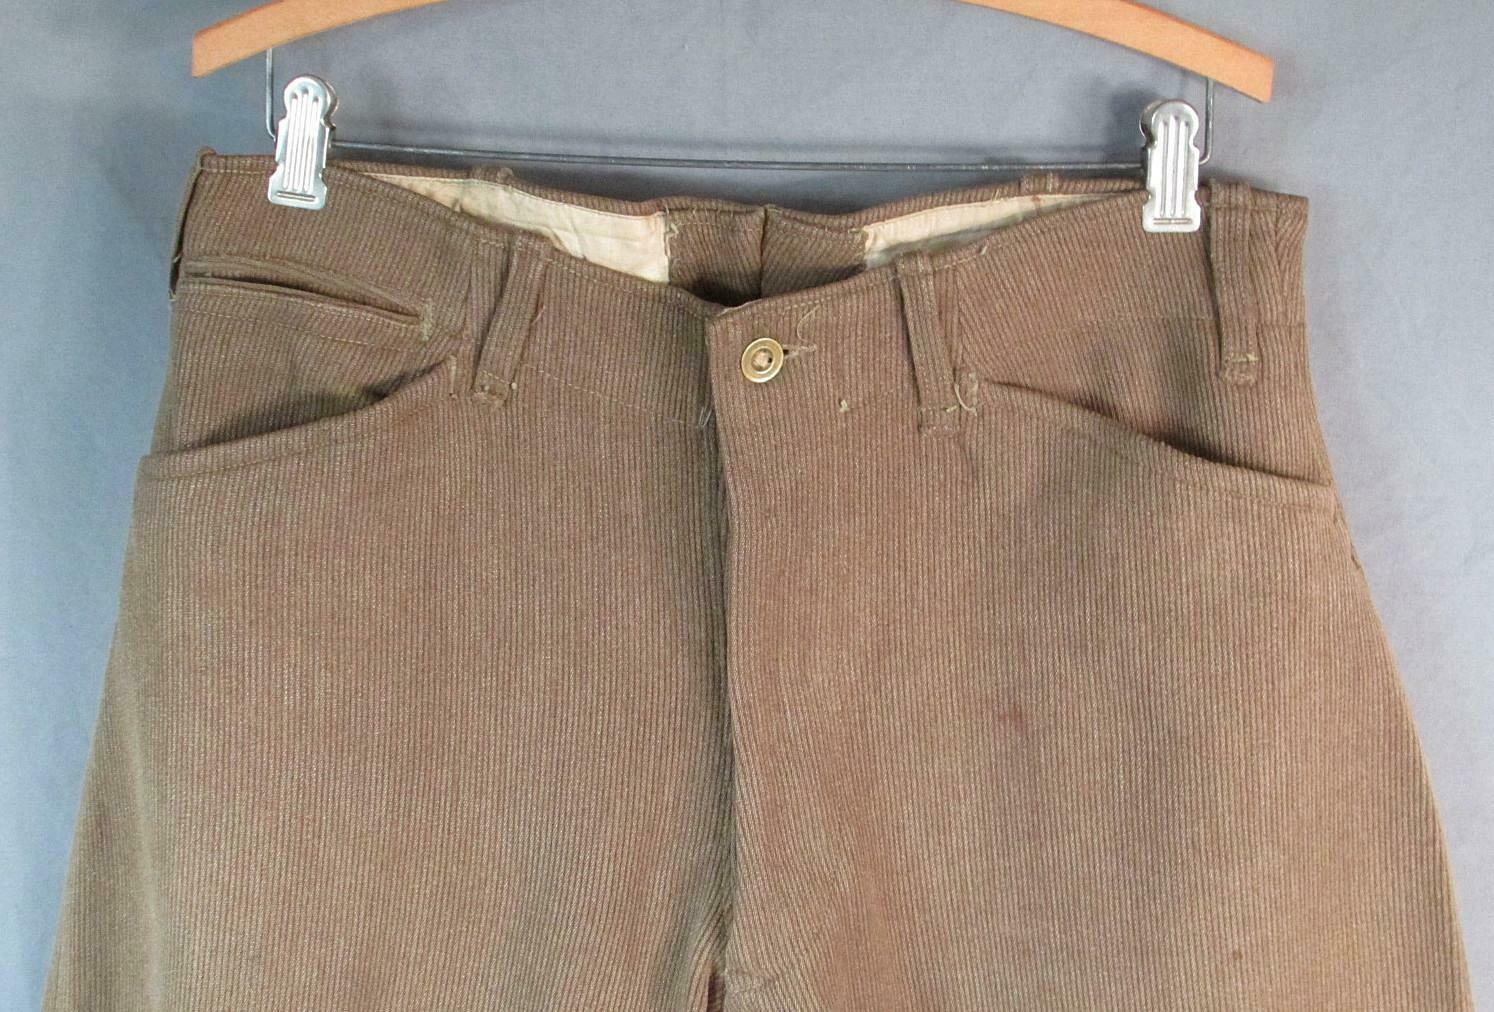 Vintage 1910s Wool Whipcord Riding Pants WWI Mili… - image 2